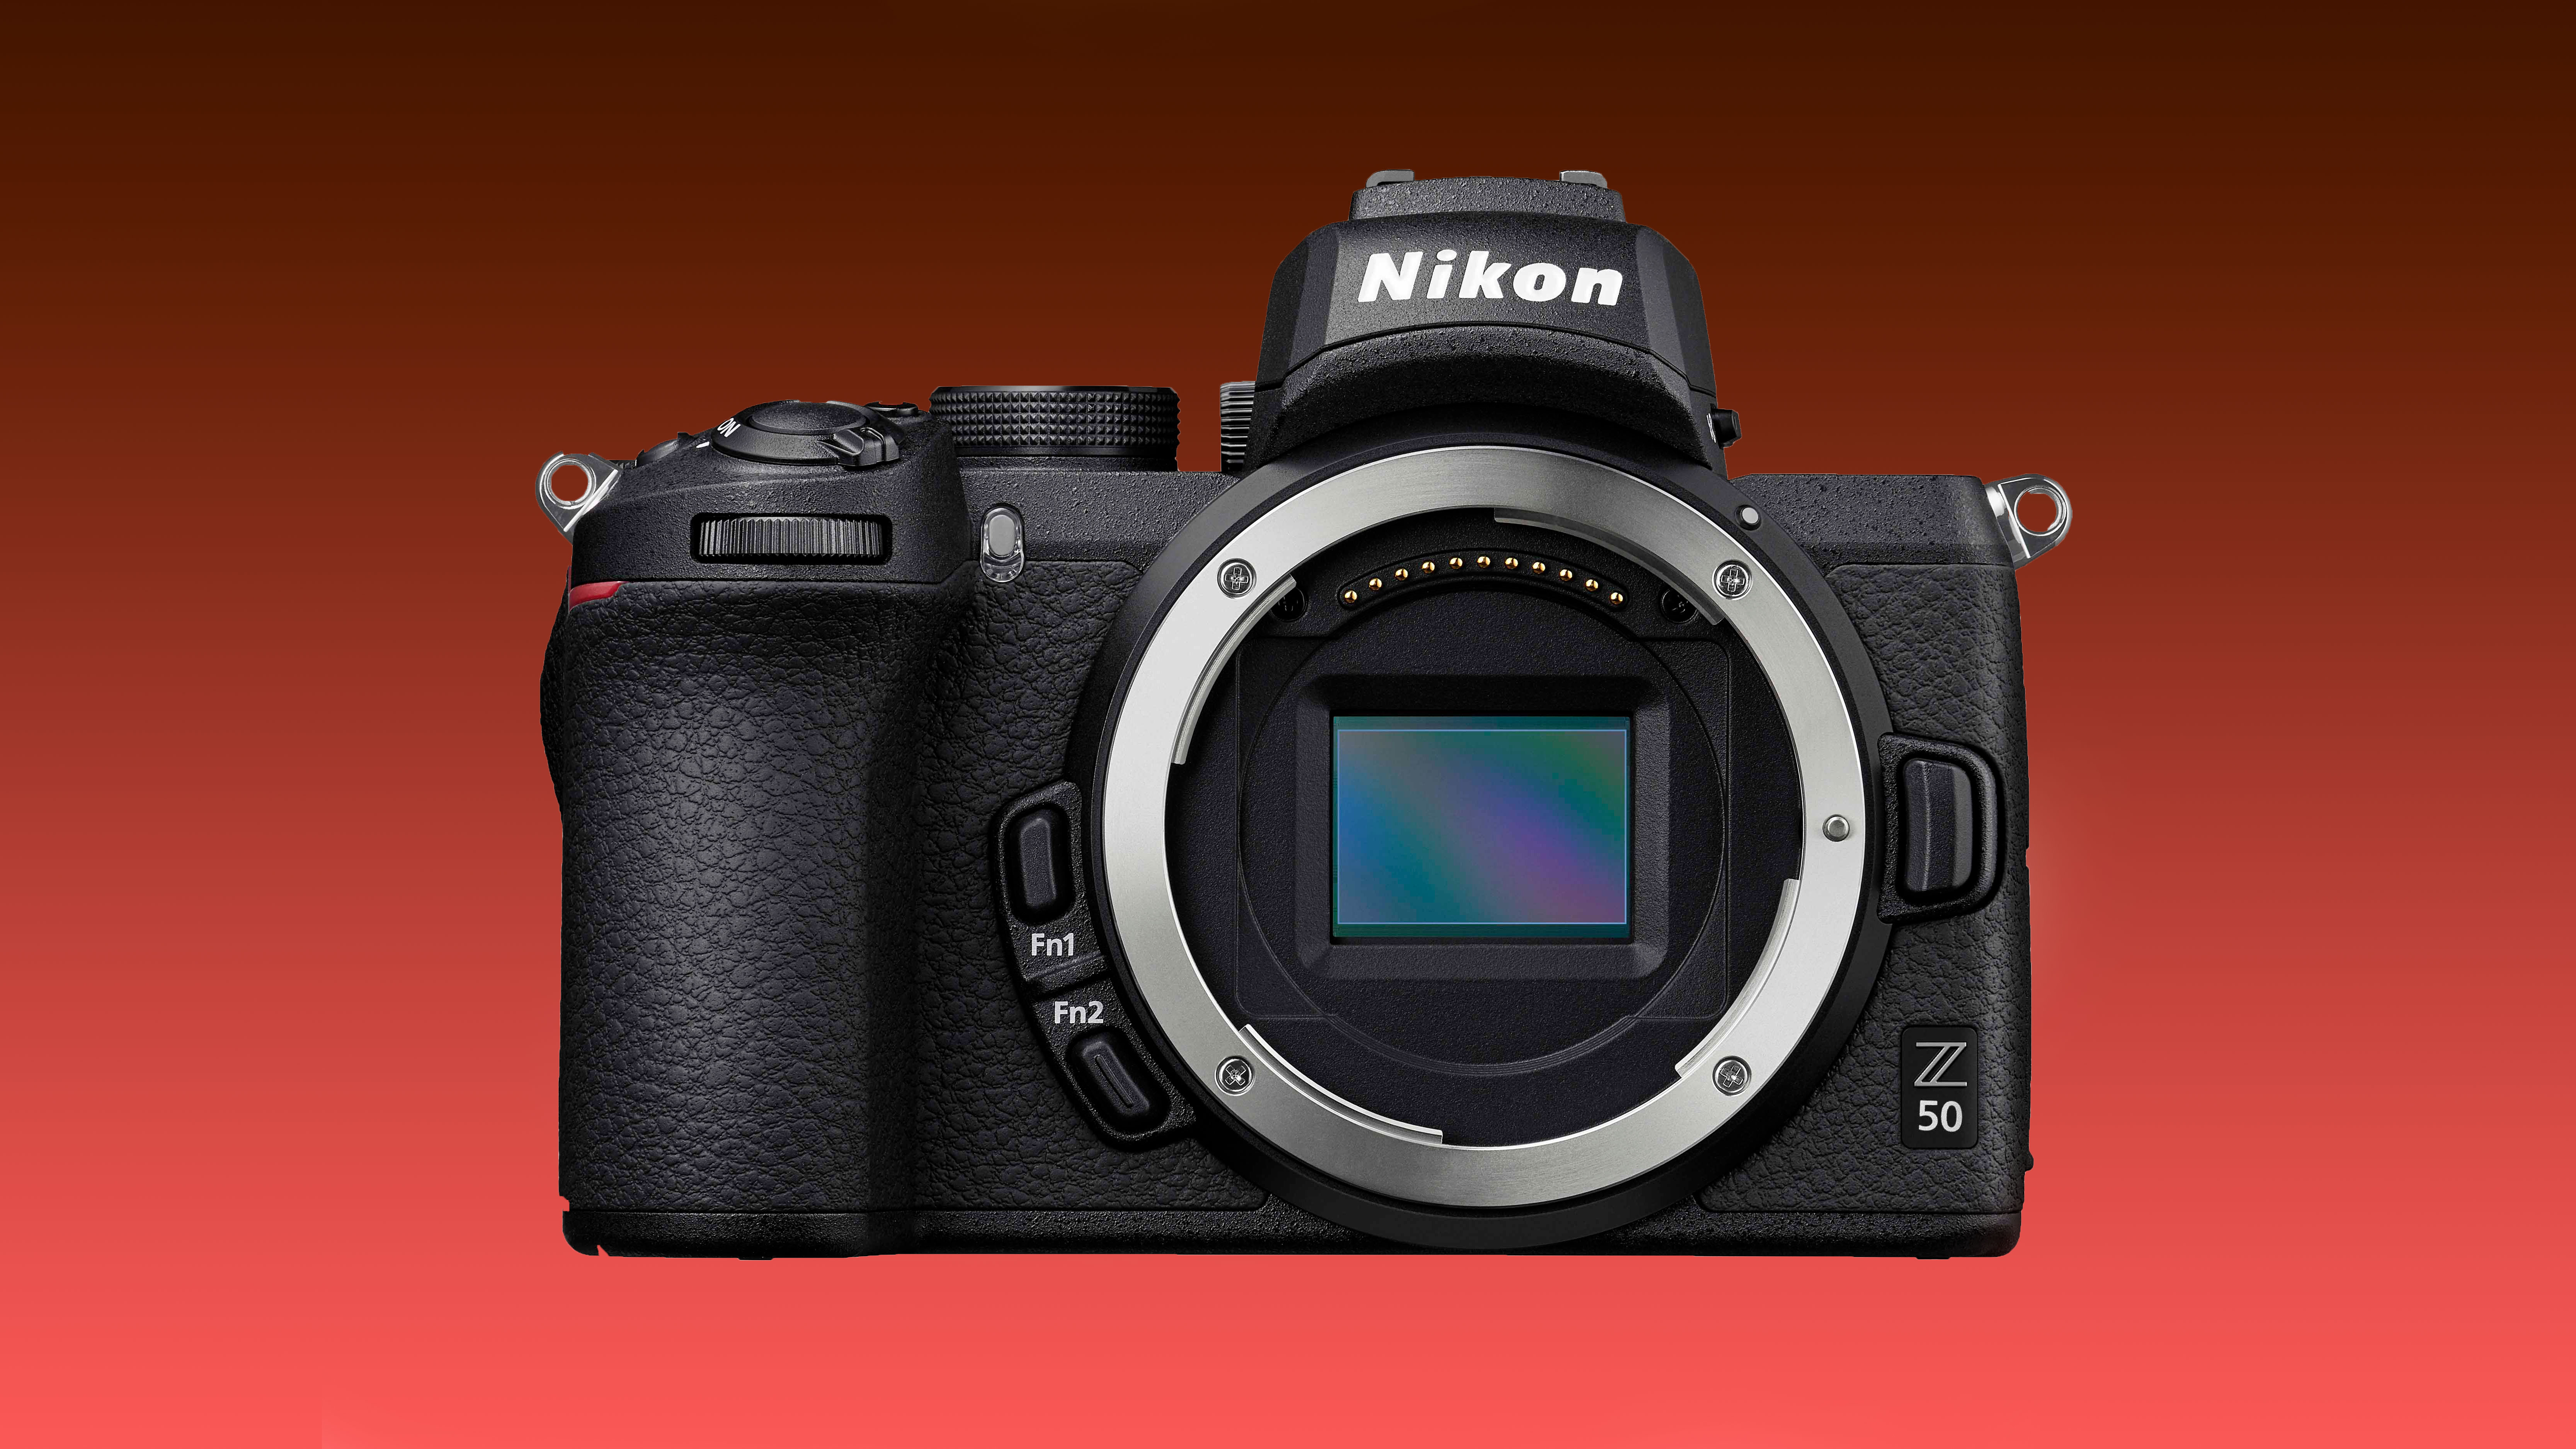 Where to find great camera discounts this month